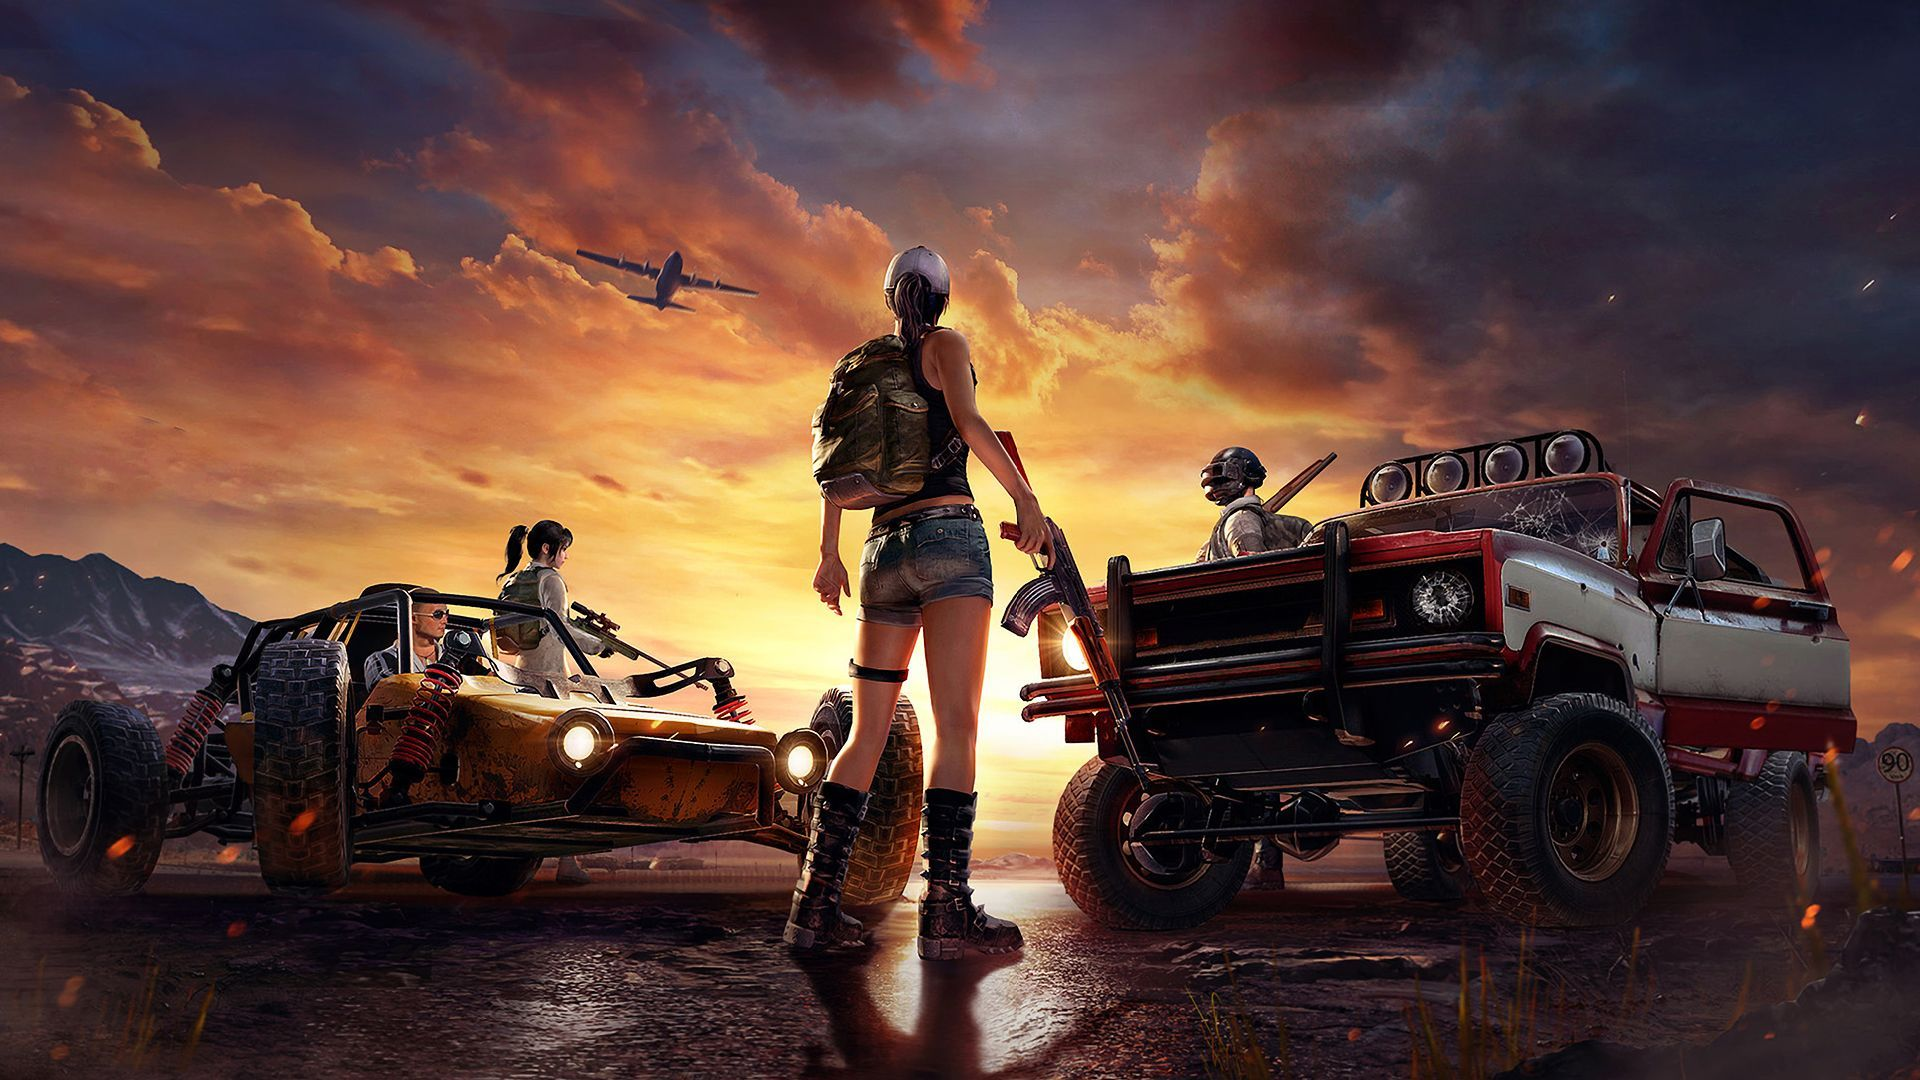 Player Unknown S Battlegrounds Pubg 4k Pubg Wallpaper Phone Pubg Wallpaper Iphone Pubg Wallpaper 192 In 2020 4k Wallpapers For Pc Hd Wallpapers For Pc Wallpaper Pc